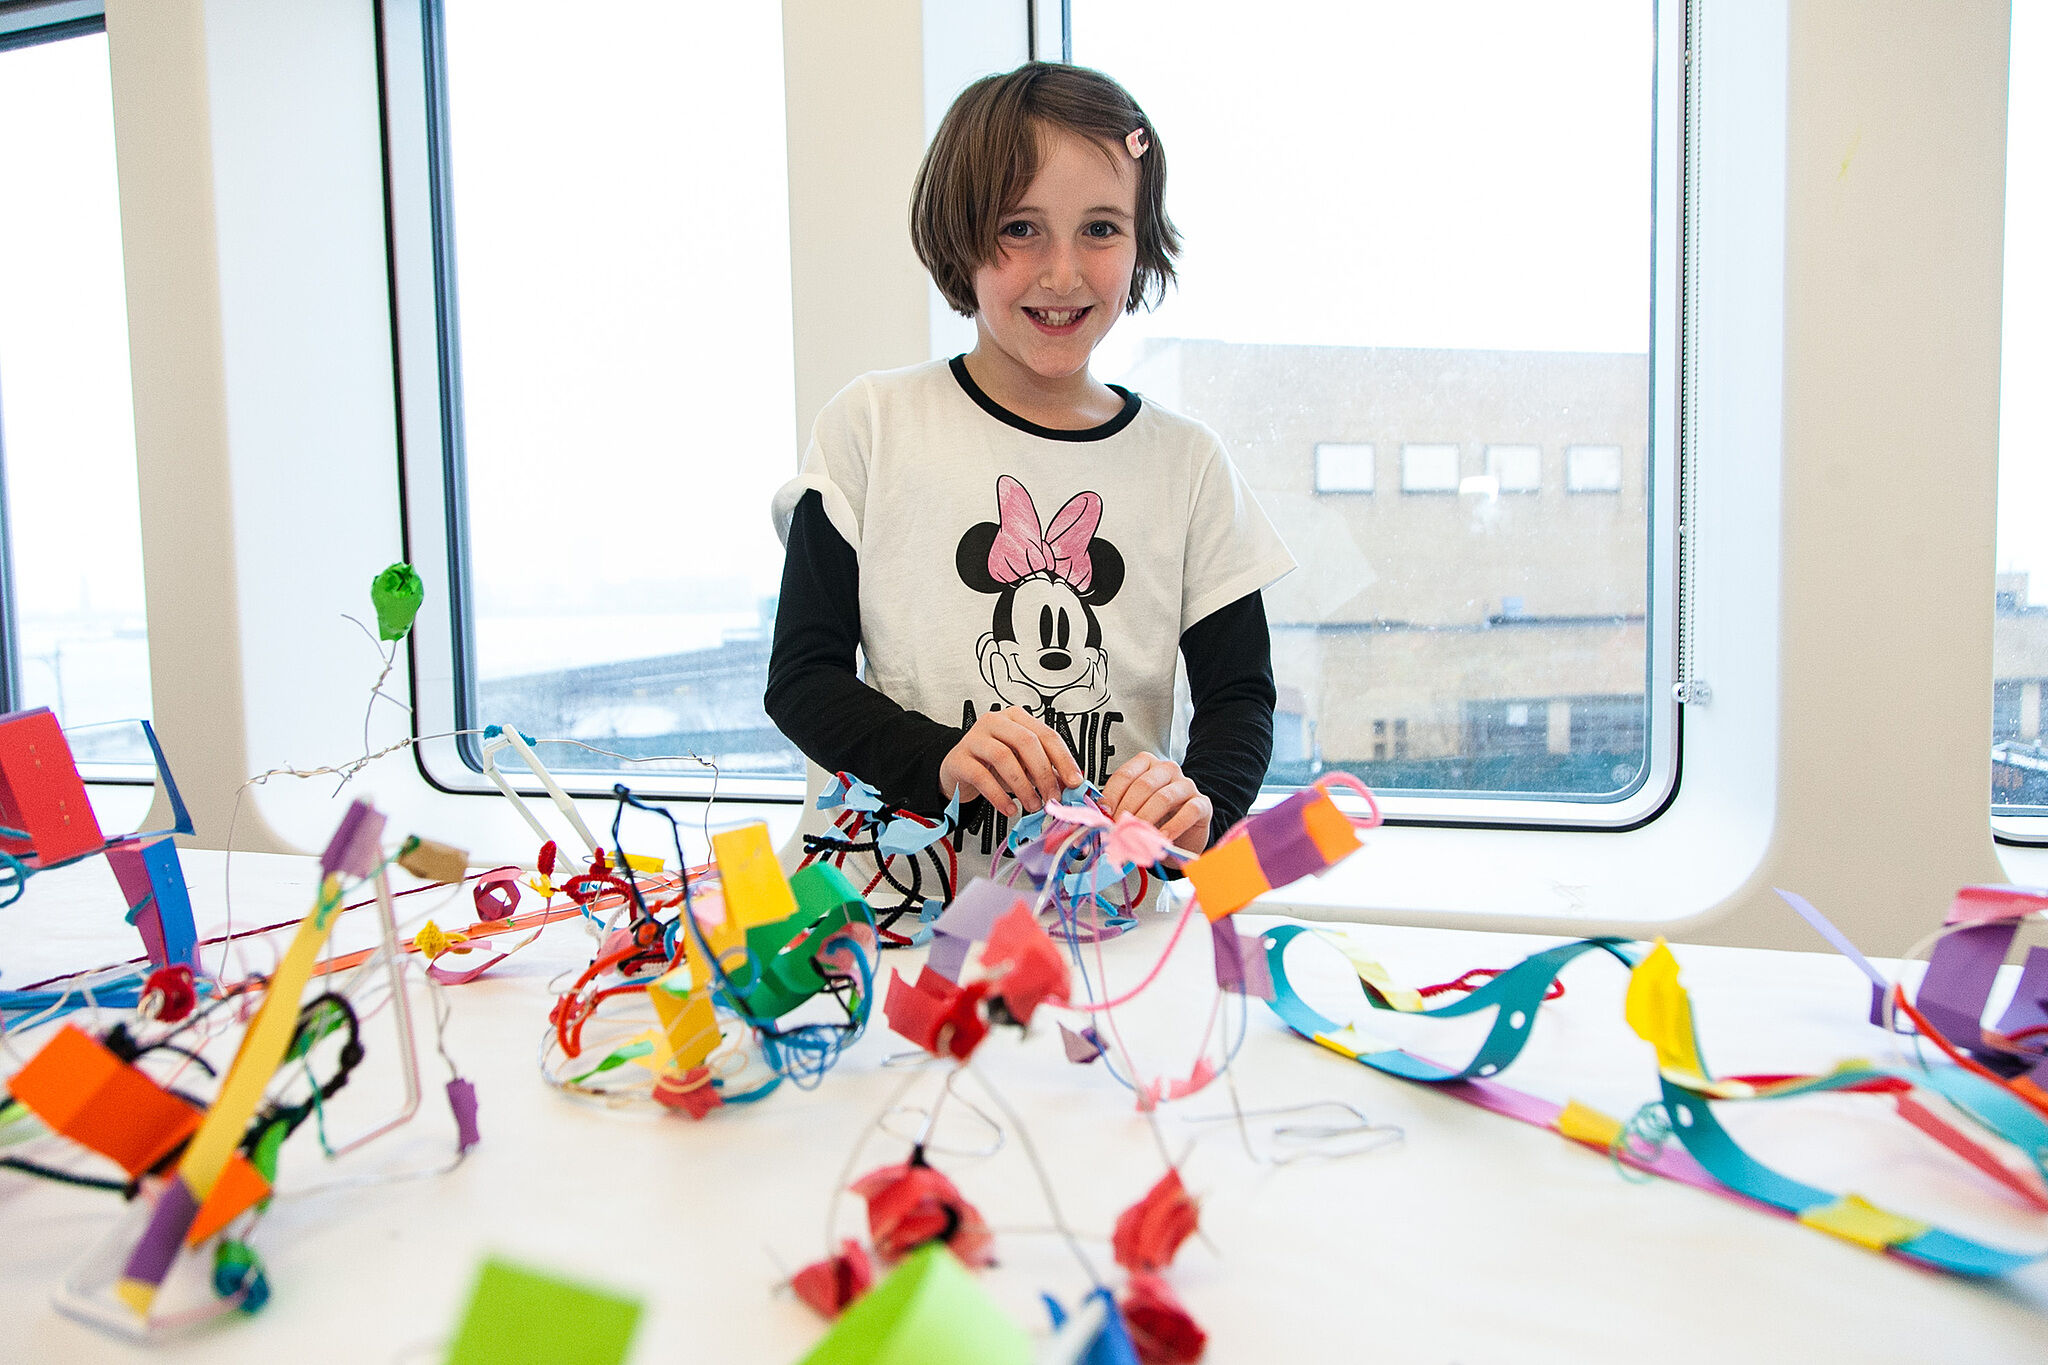 Child smiling in front of colorful crafts